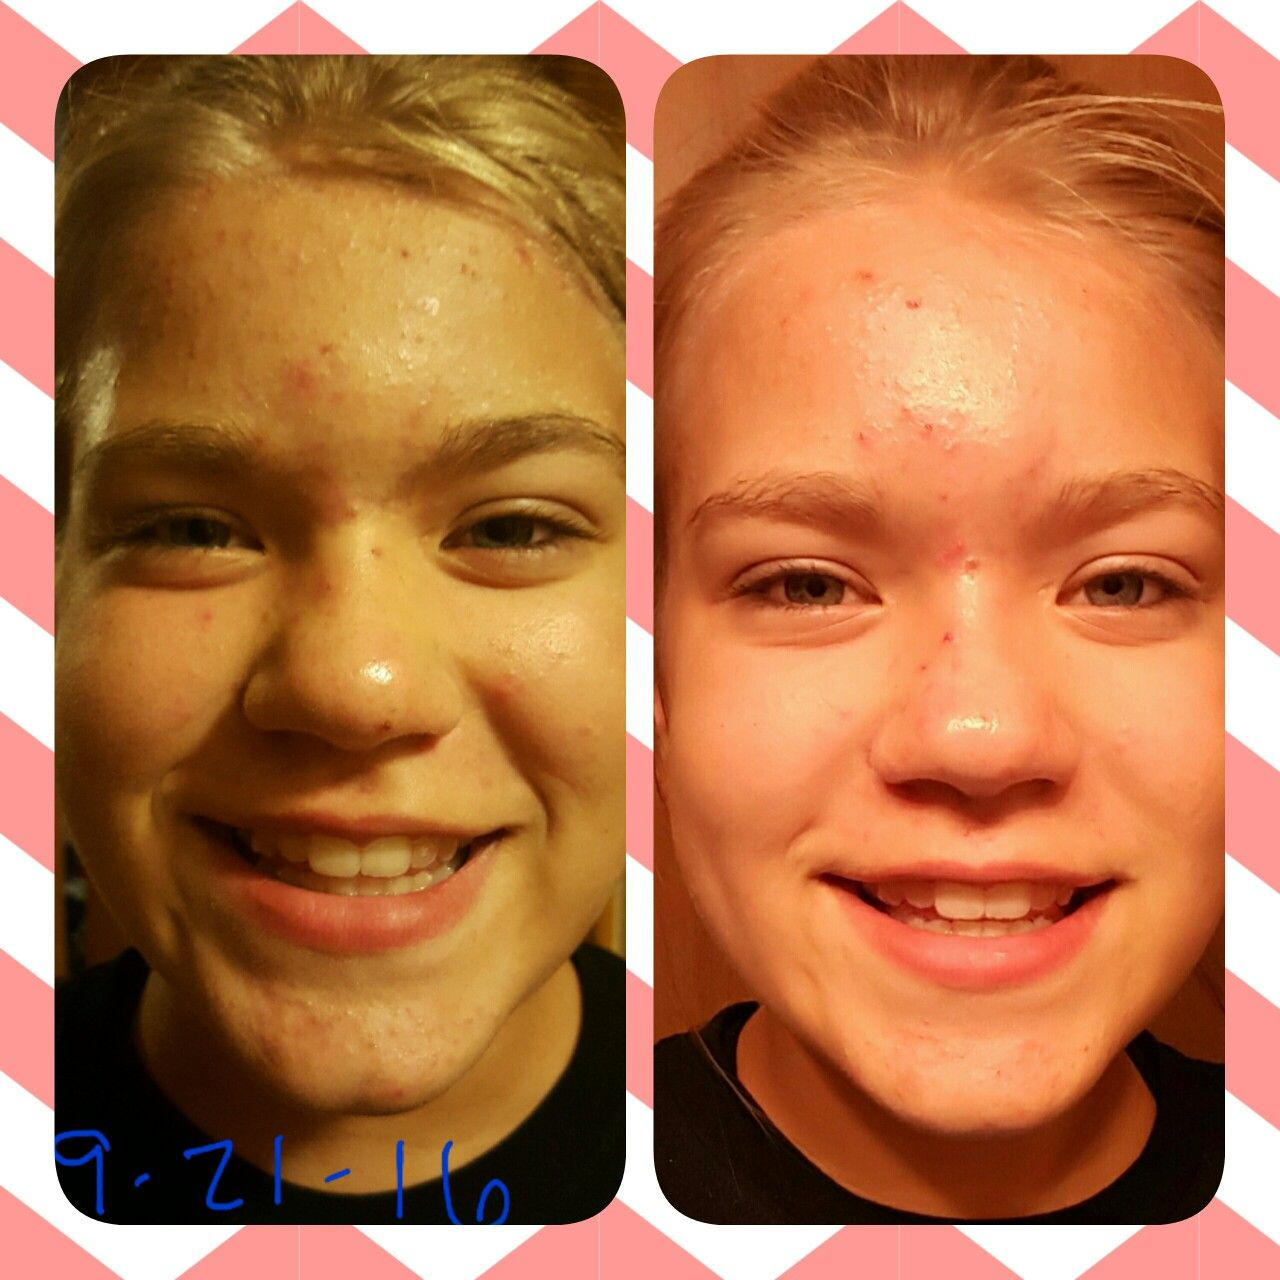 13 Year Old Used Younique Royalty Skin Care Twice A Day For 2 Weeks Dramatic Results Younique Royalty Skin Care Younique Skin Care